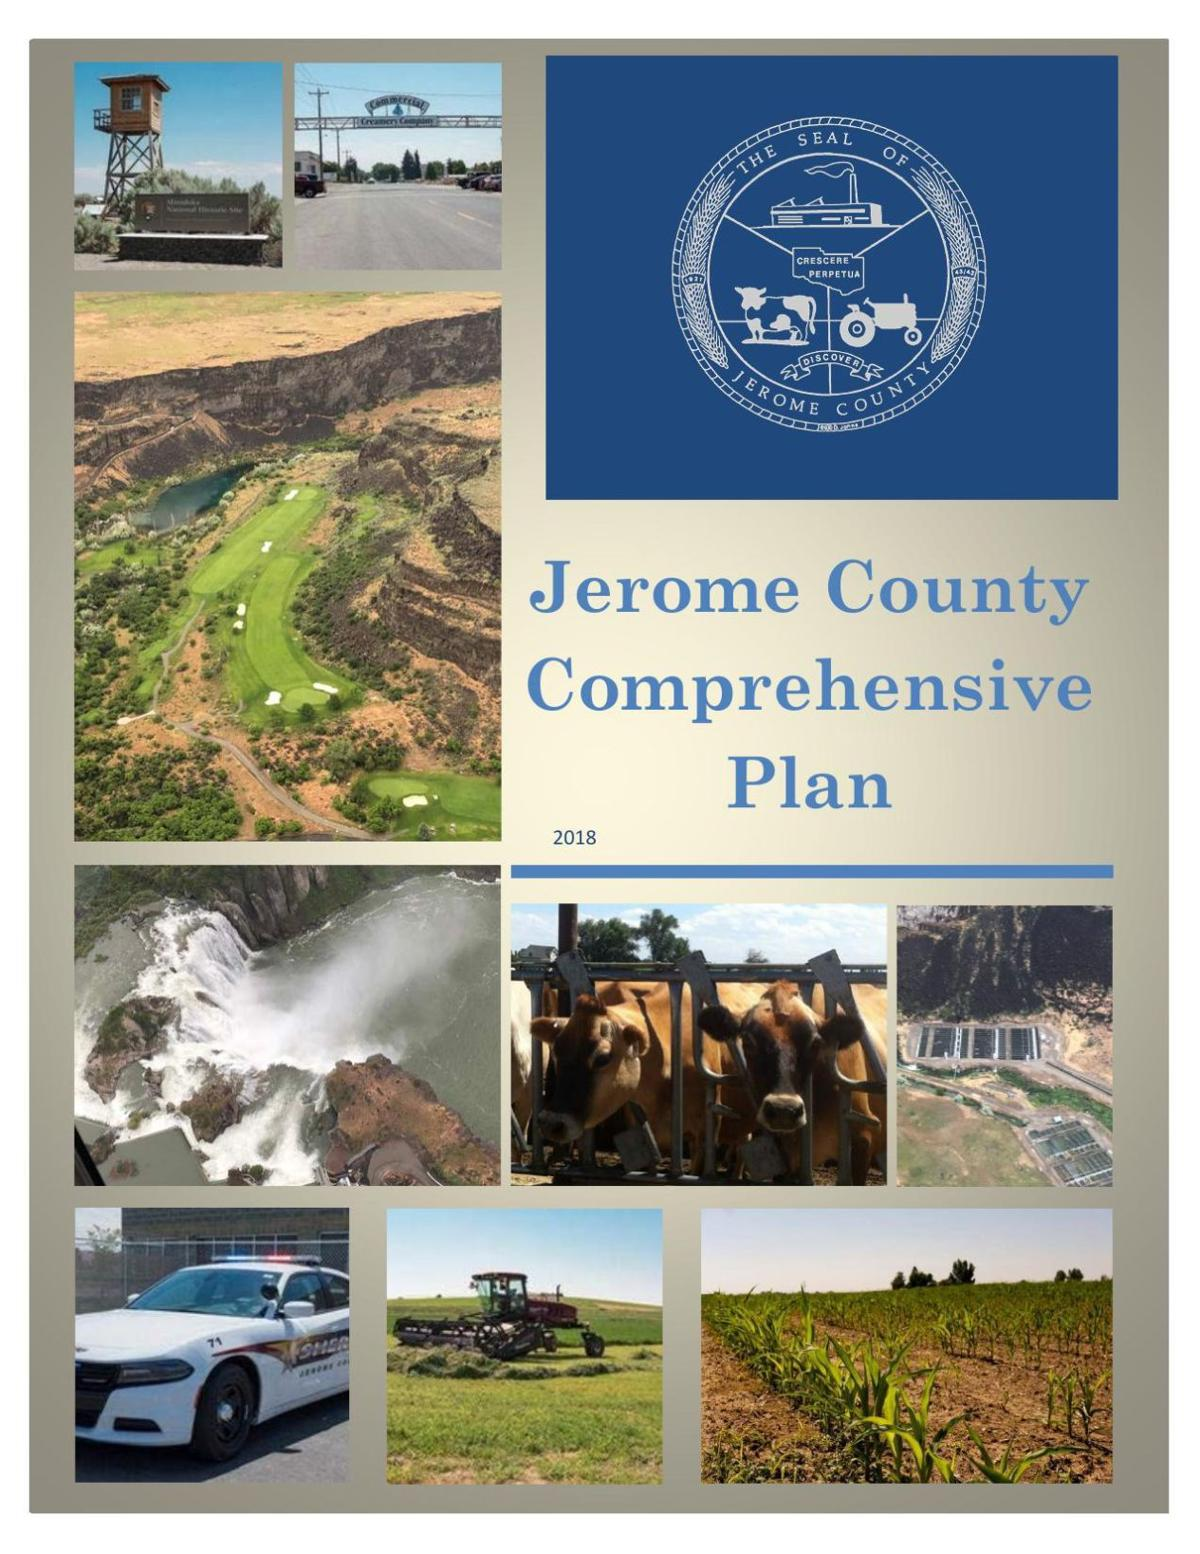 Proposed 2018 Jerome County Comprehensive Plan